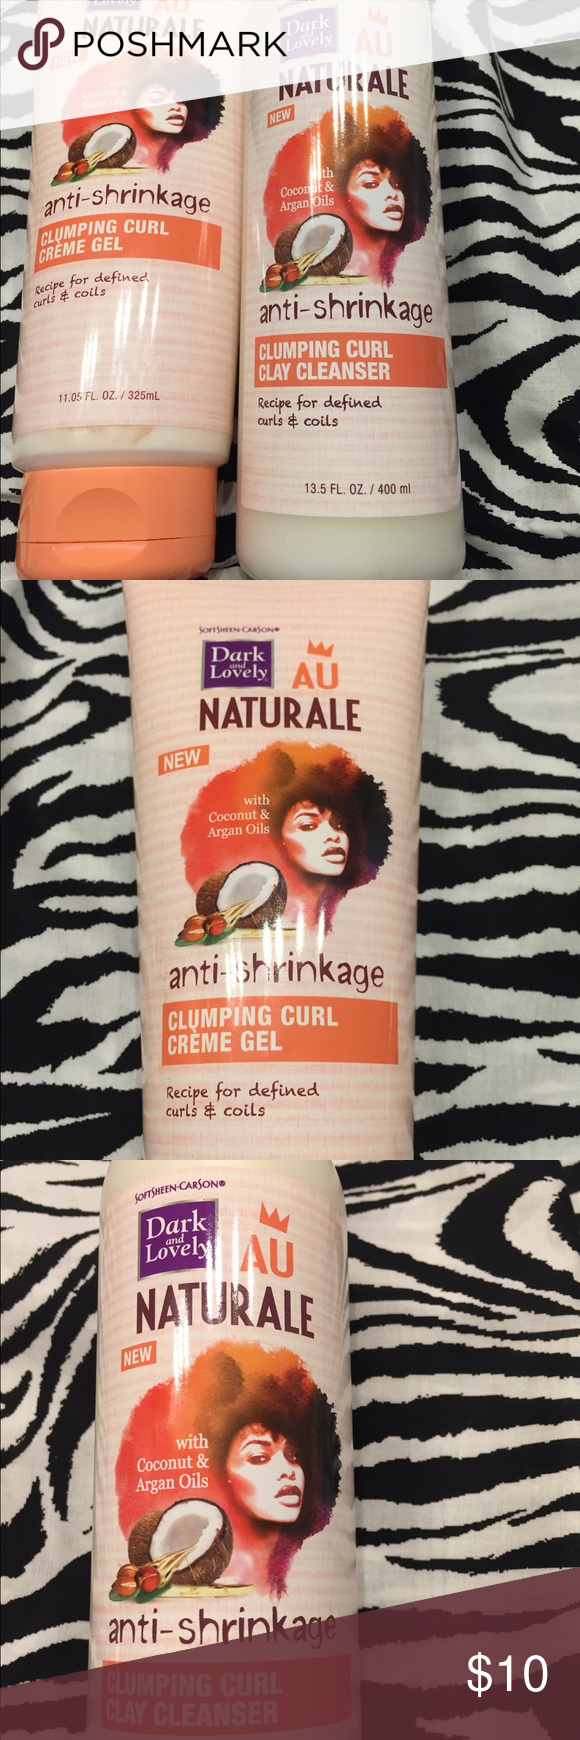 Au Naturale Clumping Curl Cleanser & Crème Gel NEVER USED